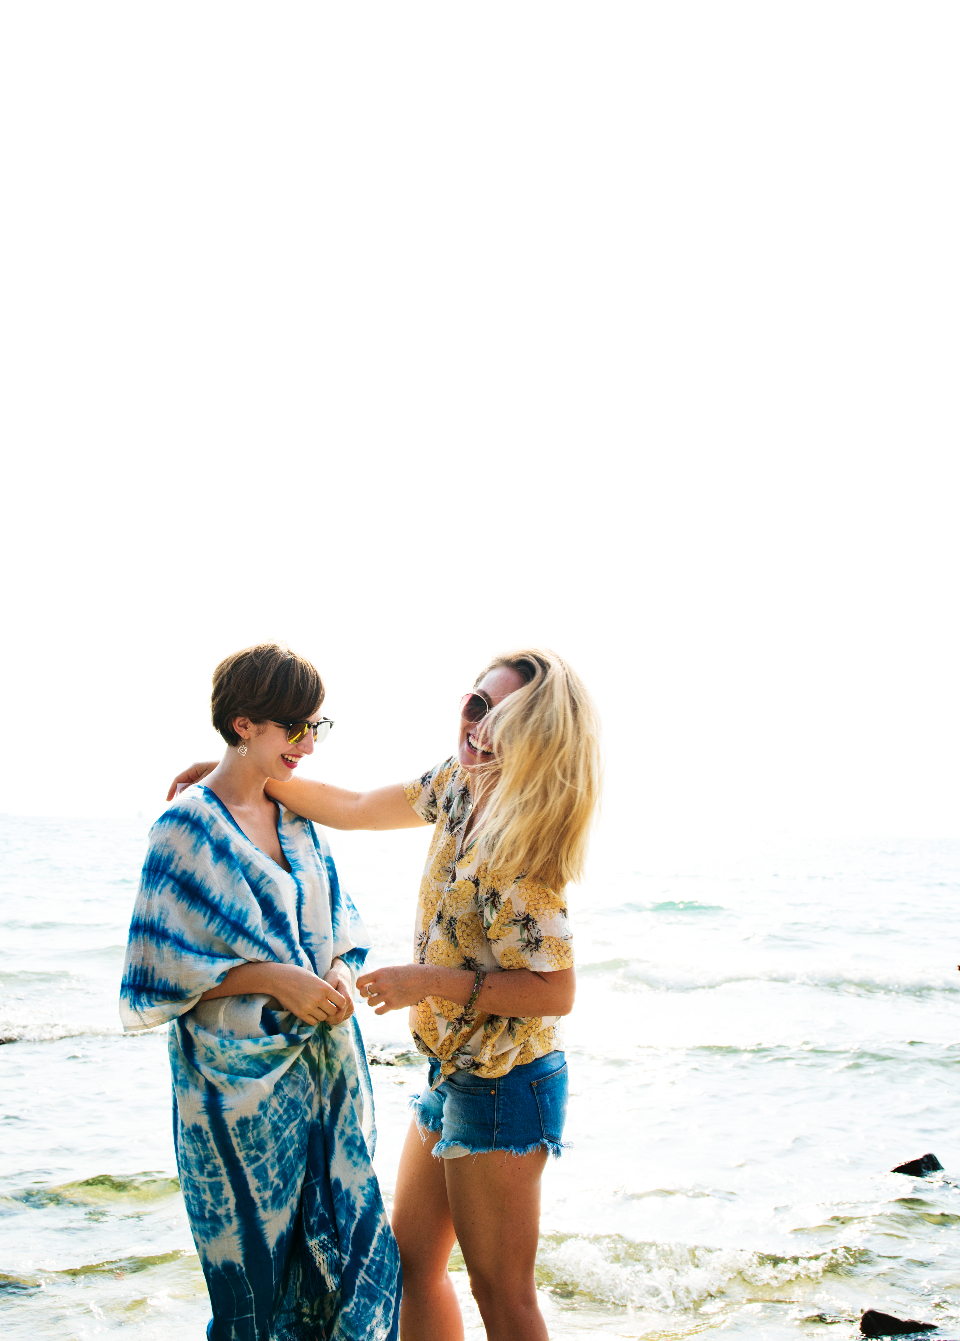 hug travel together wanderlust friends nature traveling friendship embrace weather cheerful smiling journey tourism leisure destination vacation joy holidays ocean carefree coast laughing adventure happy sunny casual tr